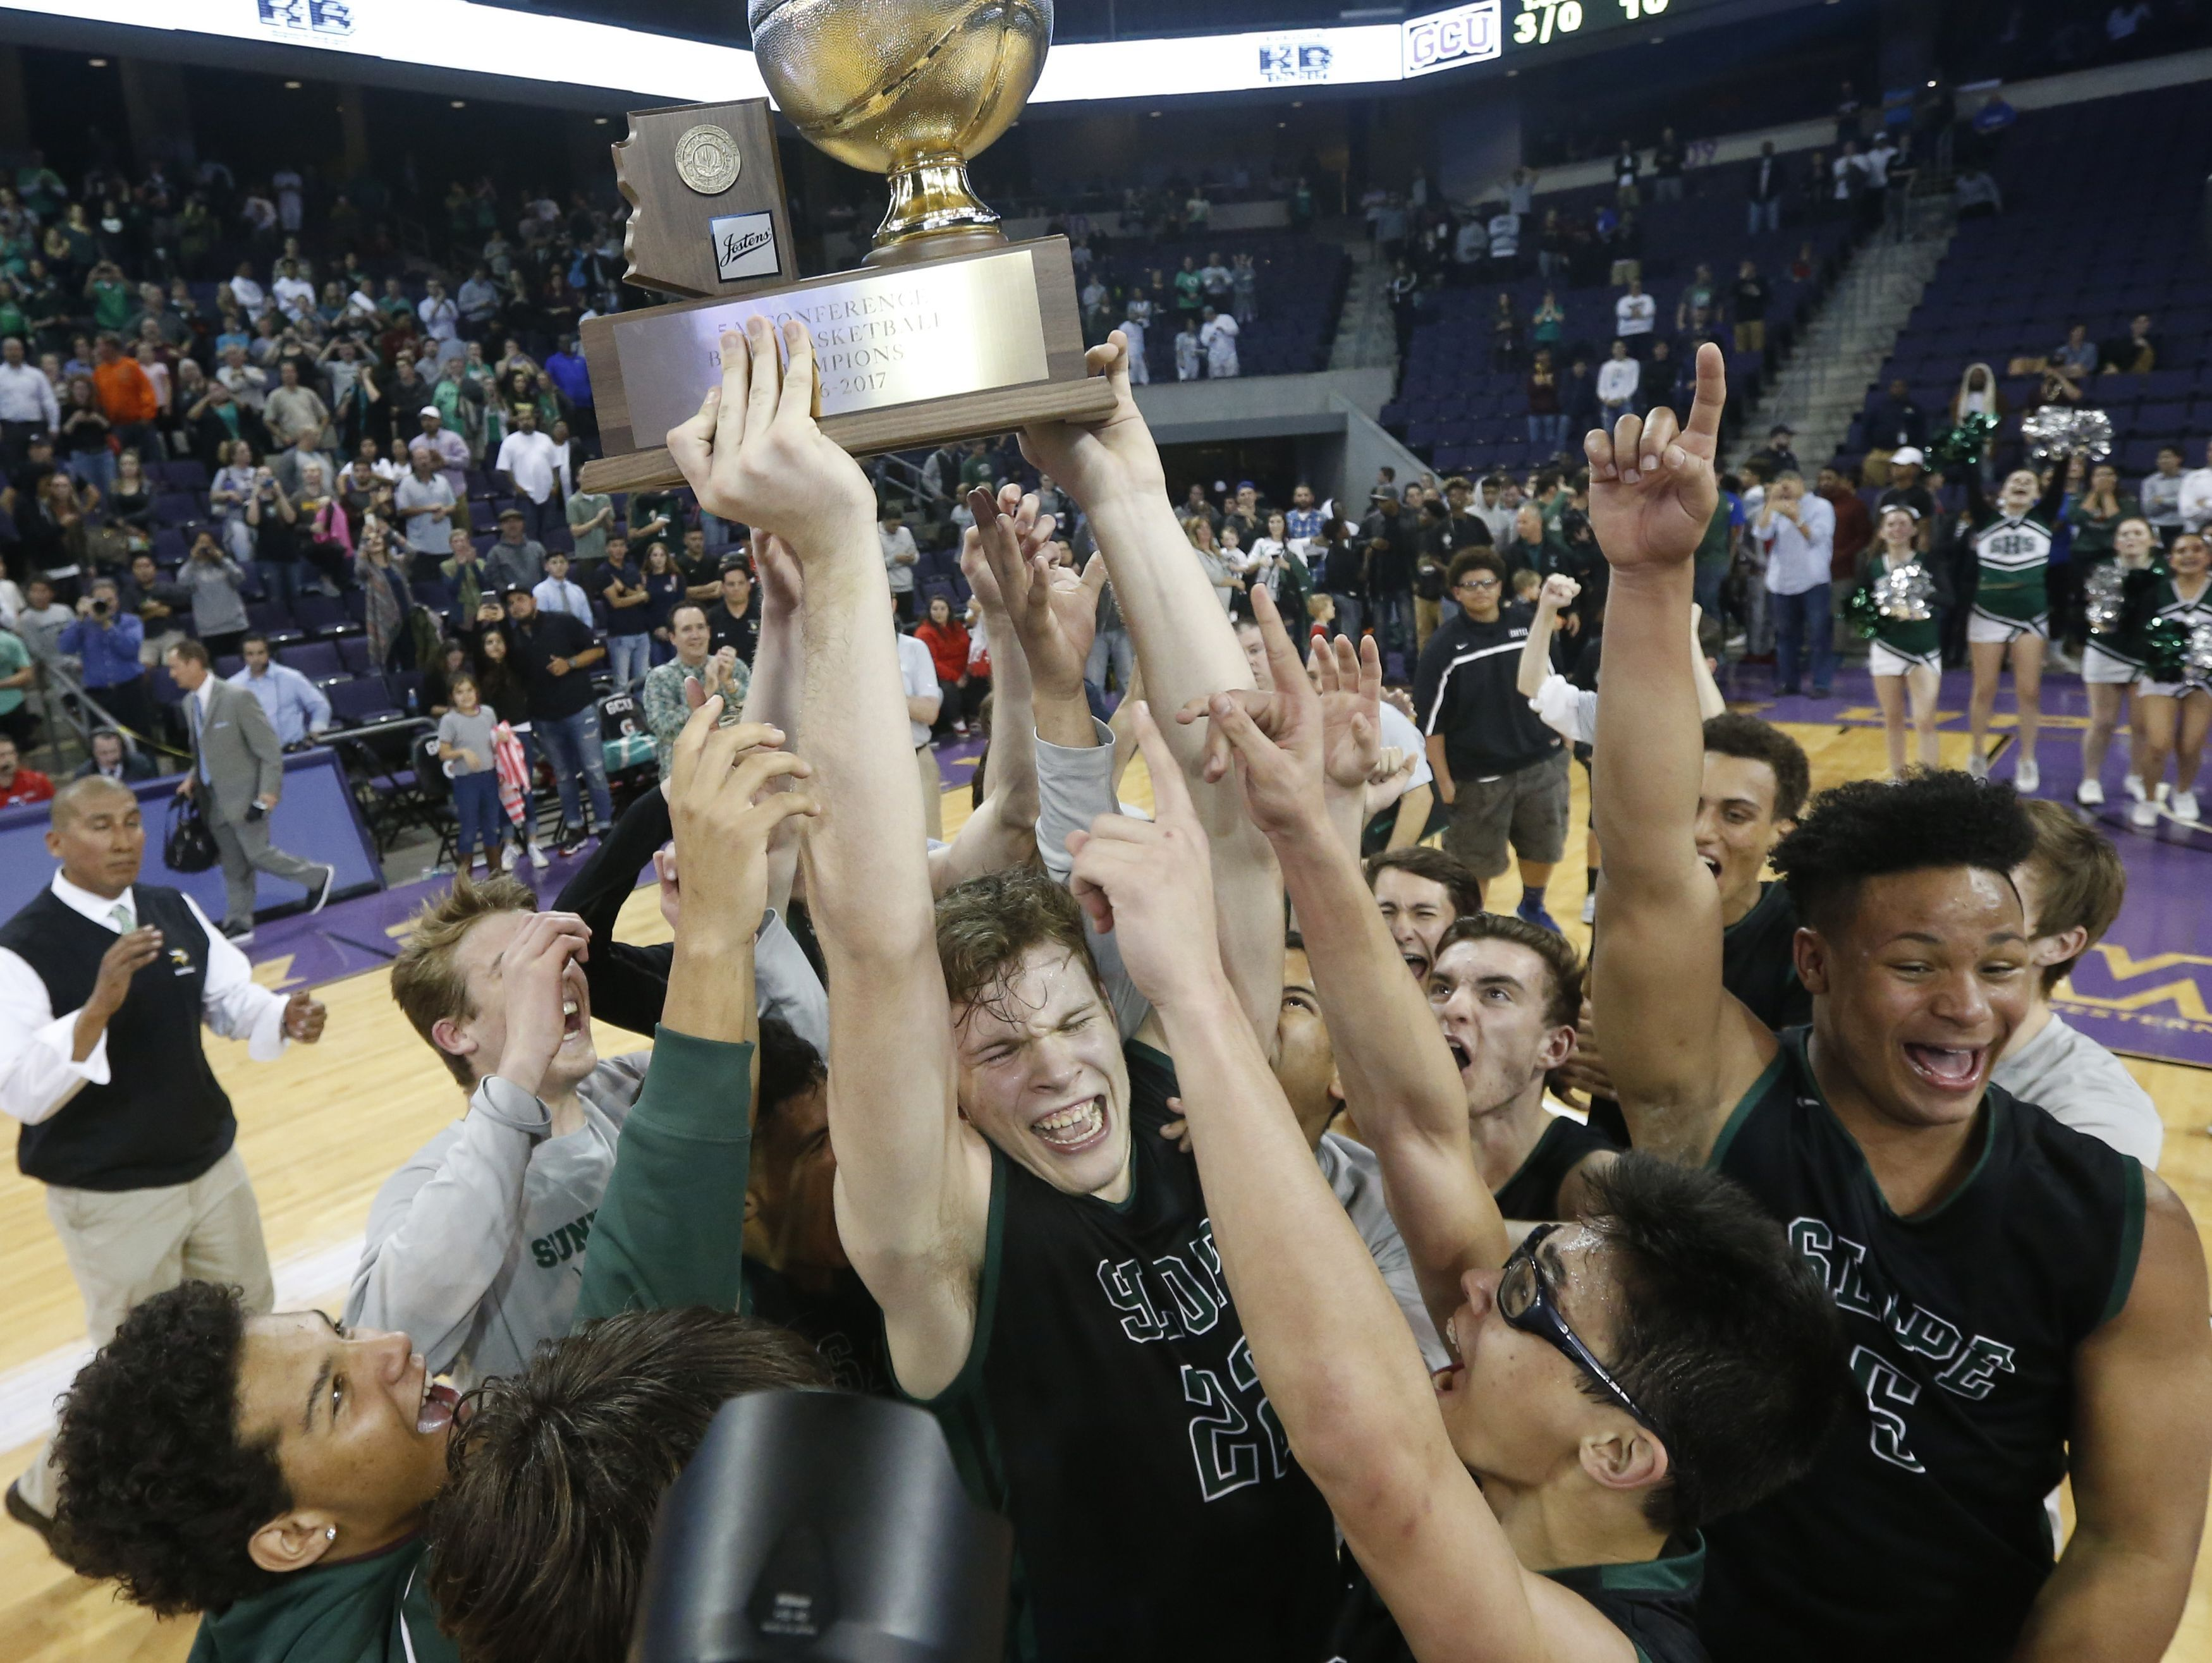 Sunnyslope's Chris Orozco (22) lifts the trophy with his team celebrating the State Championship win over Apollo, 58-57 in double overtime, at GCU Arena on February 27, 2017 in Phoenix, Ariz.